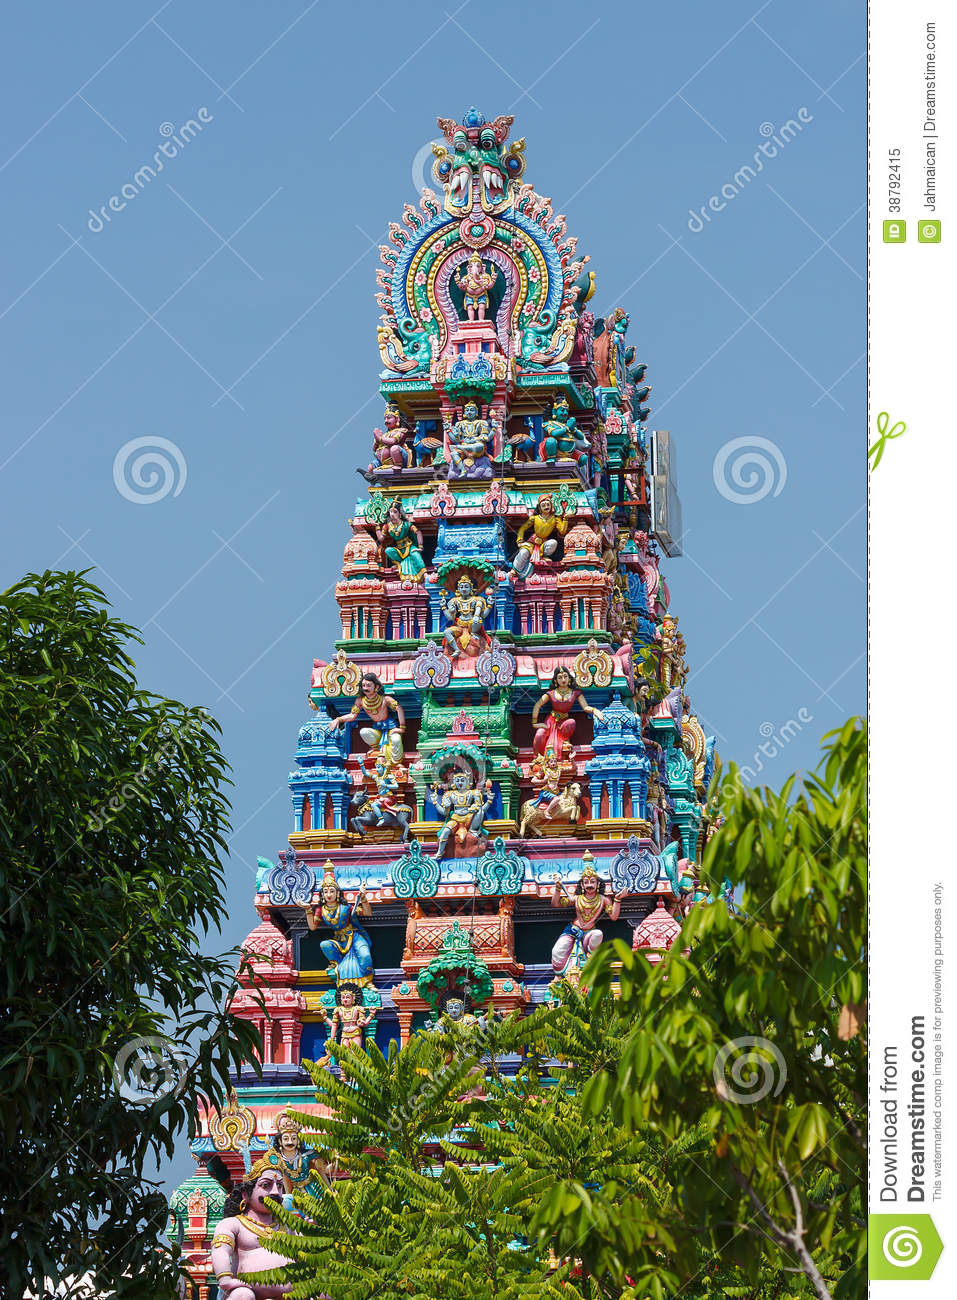 temple city hindu singles ॐ ancient hindu temple its a temple & its carved from a single mountain kancheepuram/mahabalipuram is a temple city of tamil nadu.